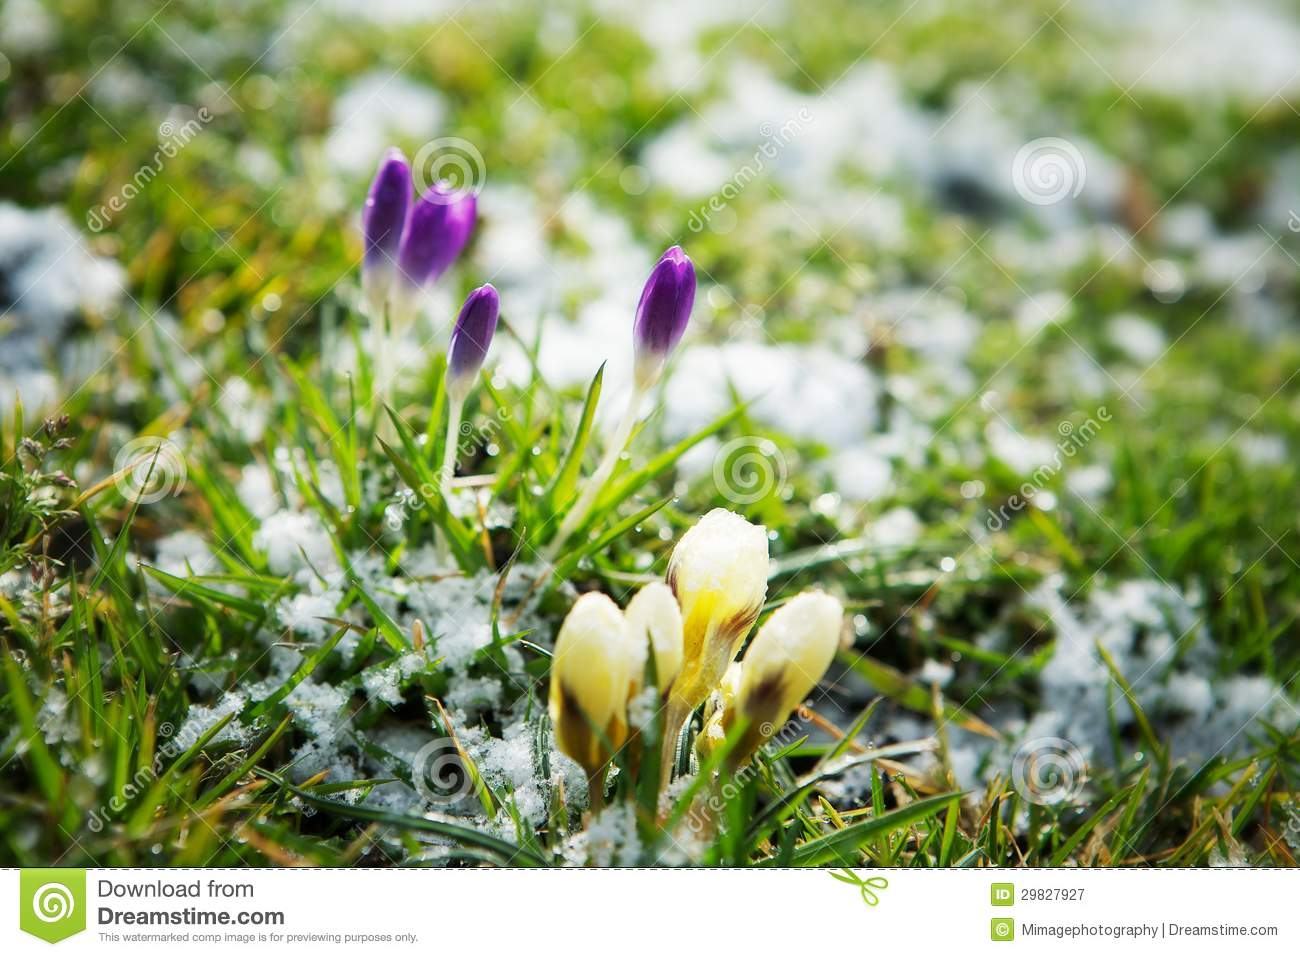 Flowers Growing In Snow Stock Image Image Of Green Grass 29827927